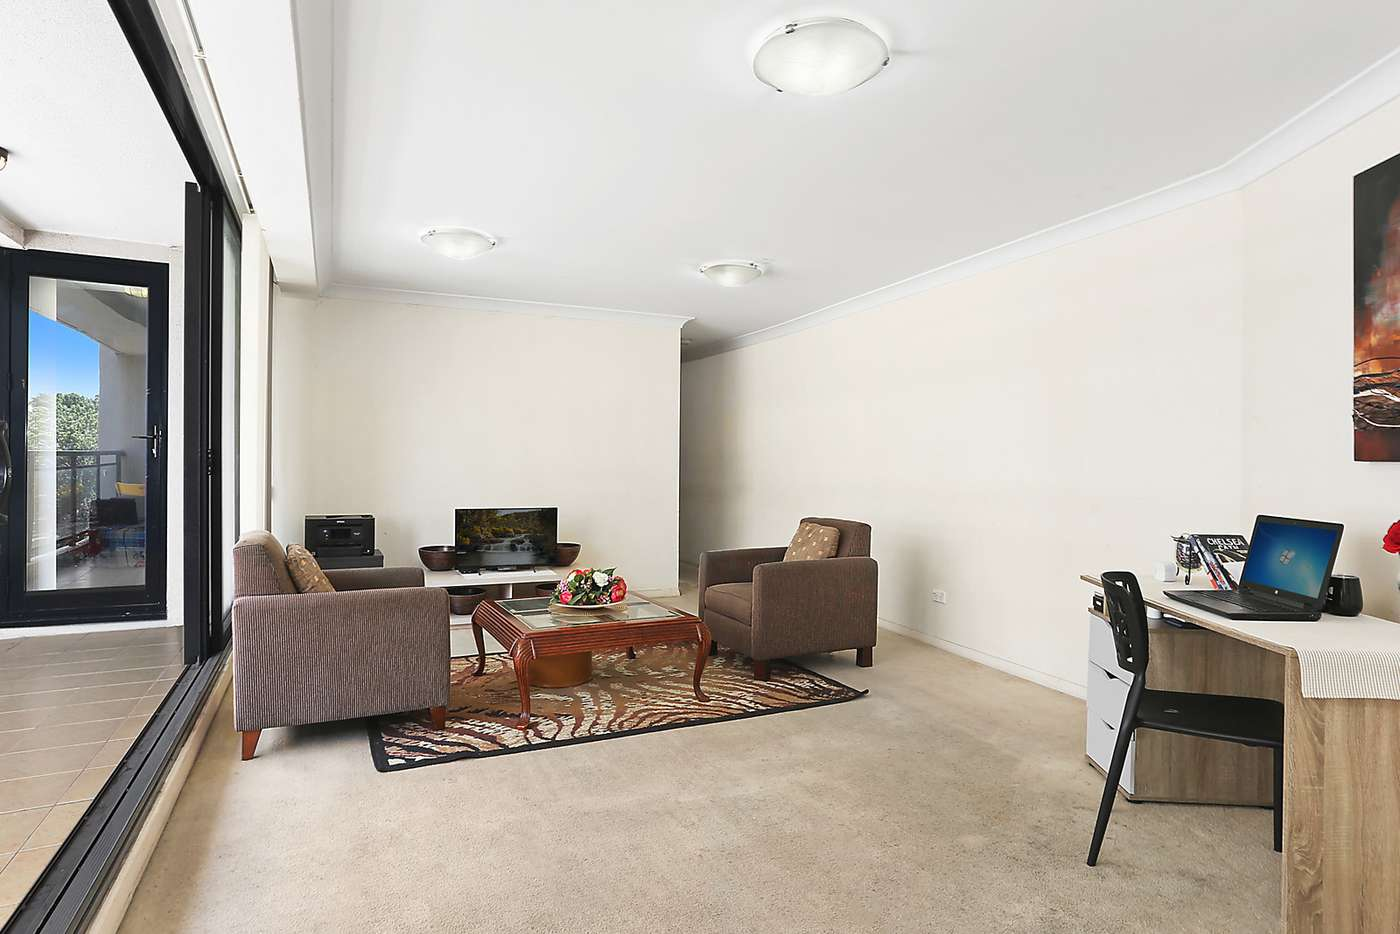 Main view of Homely apartment listing, 15/32 Hassall Street, Parramatta NSW 2150